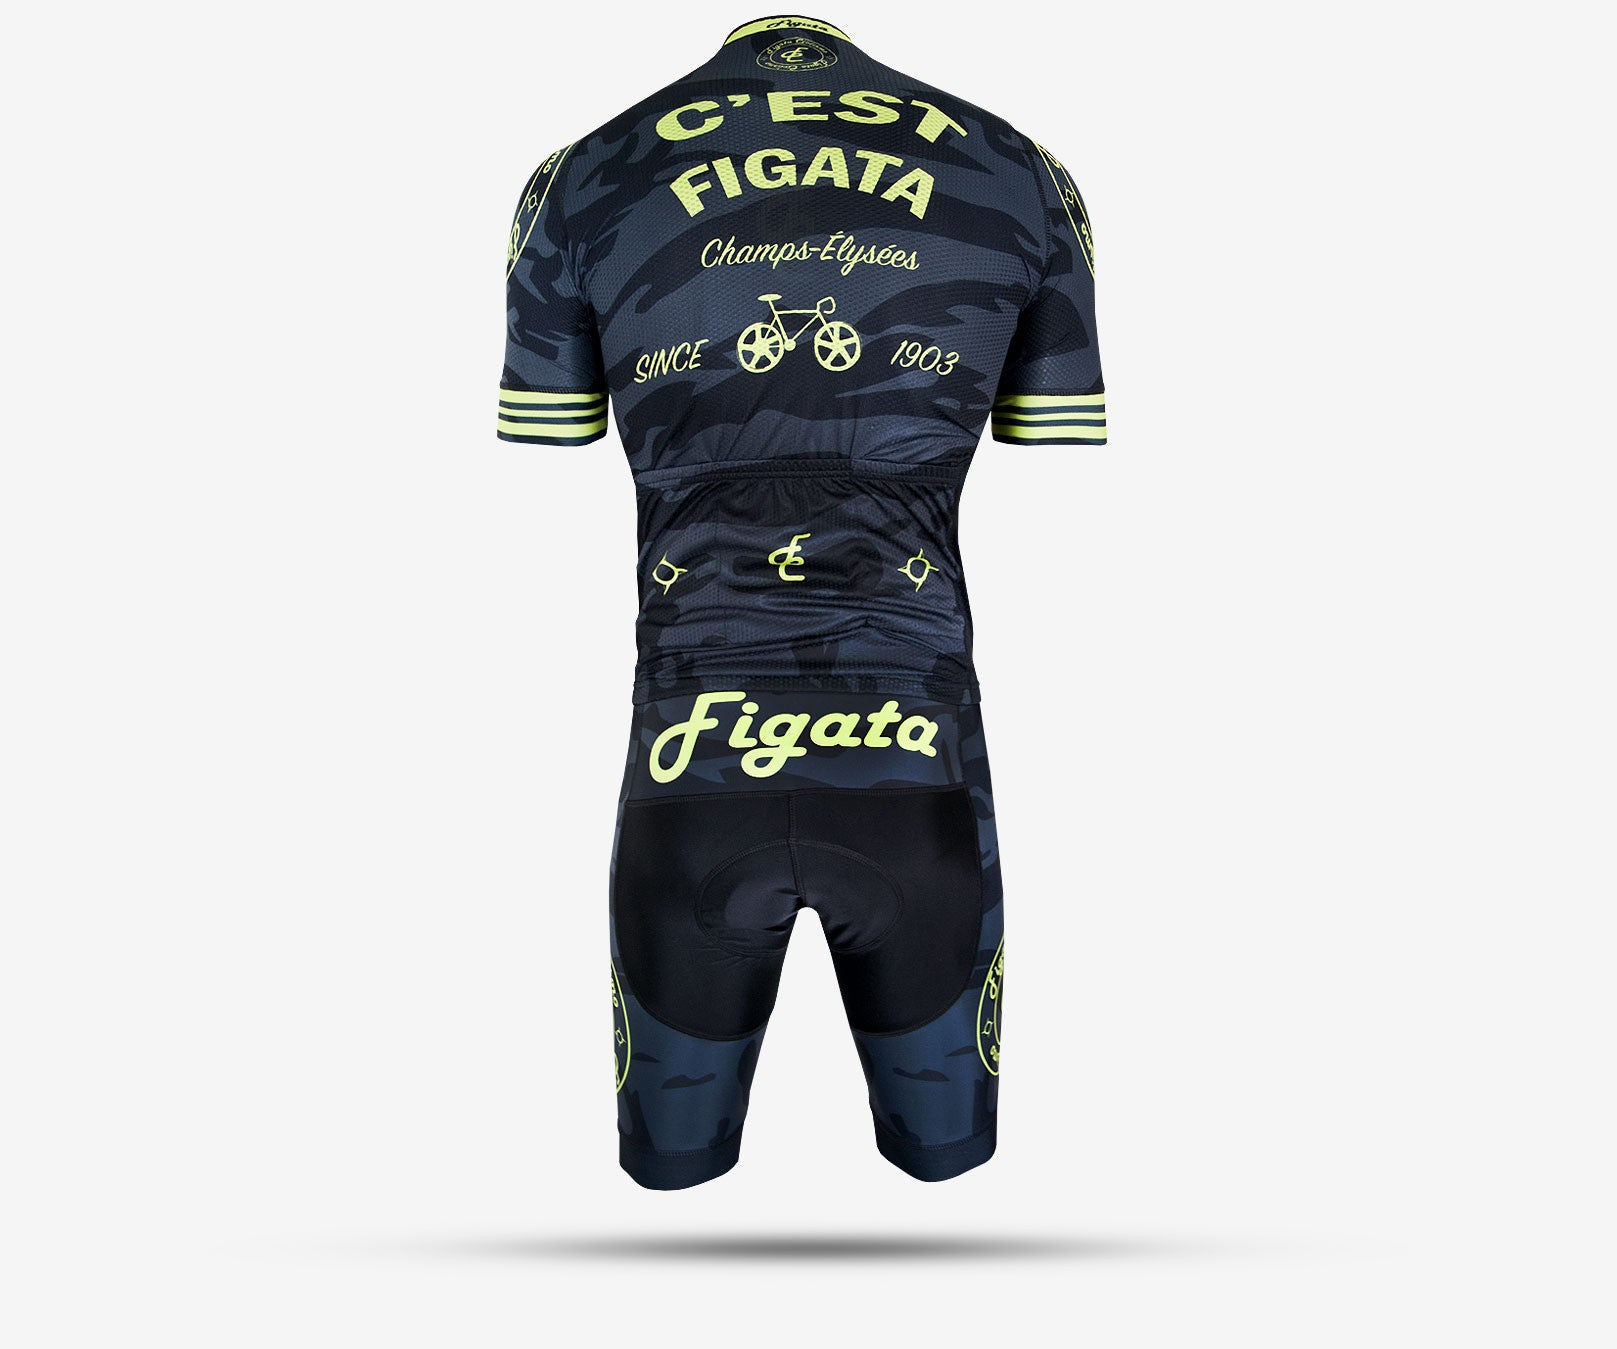 Figata Ciclismo Le Tour Cycling Kit S.E.